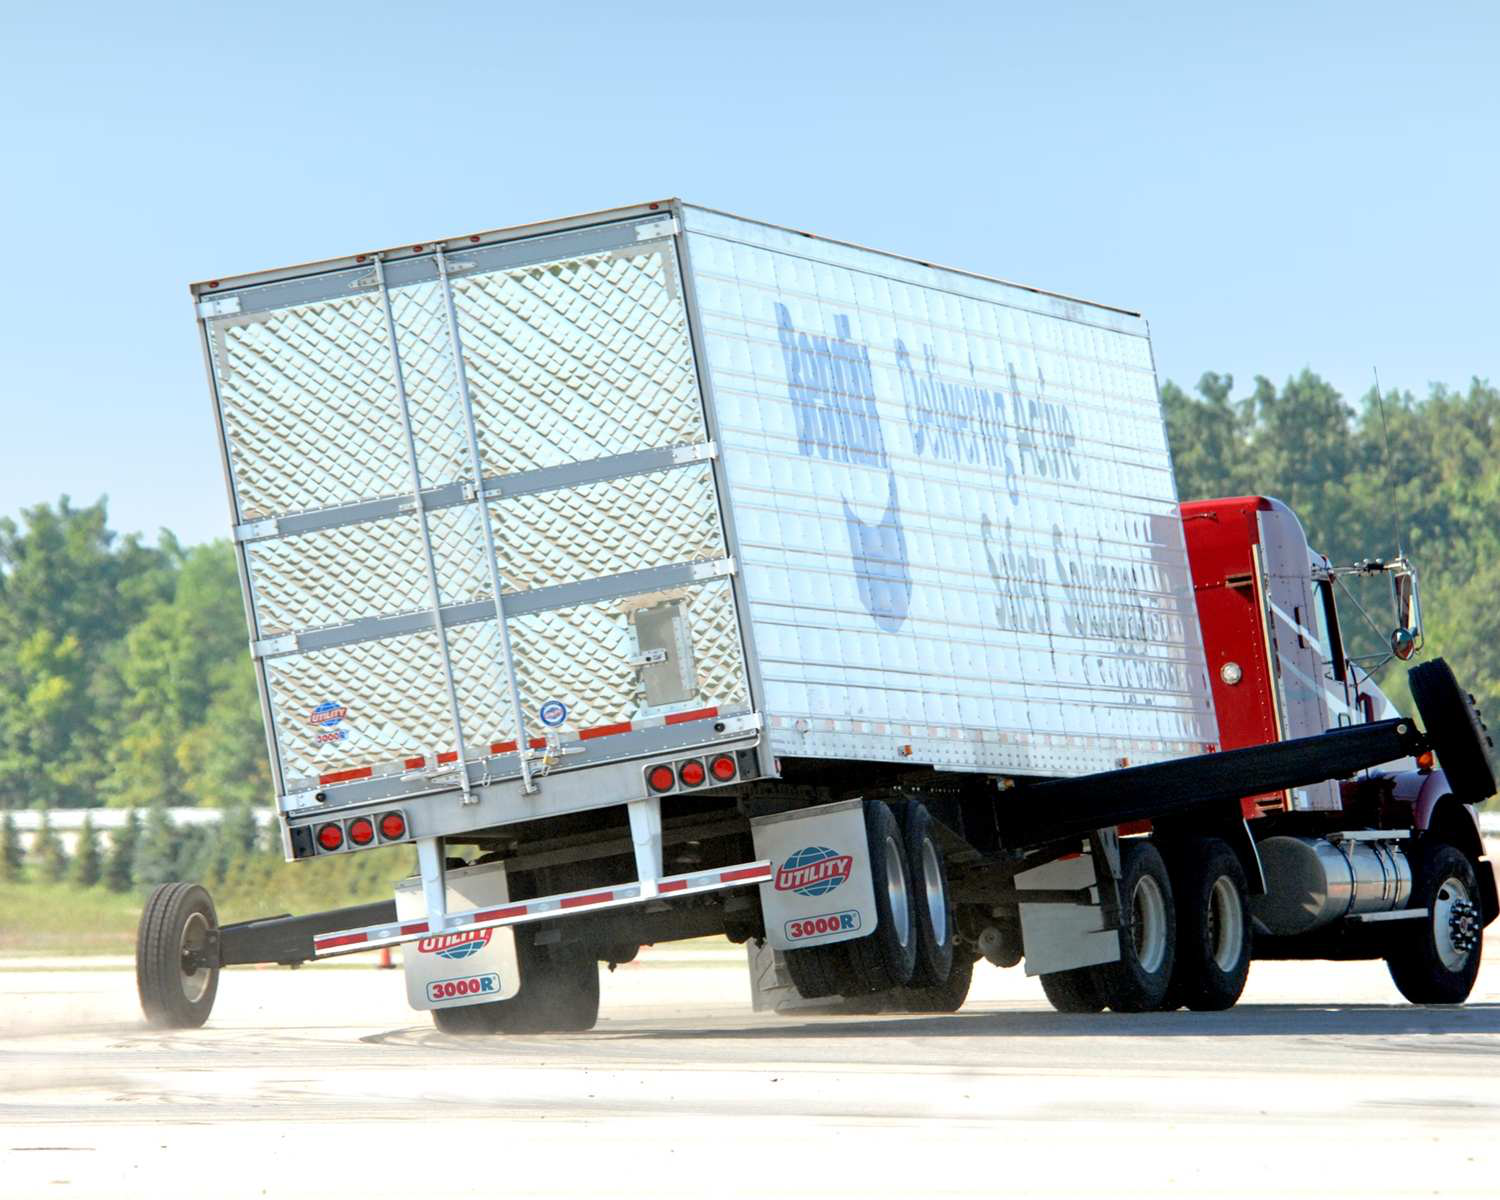 NHTSA publishes Final Rule requiring trucks made in 2017 and beyond to be equipped with stability control systems